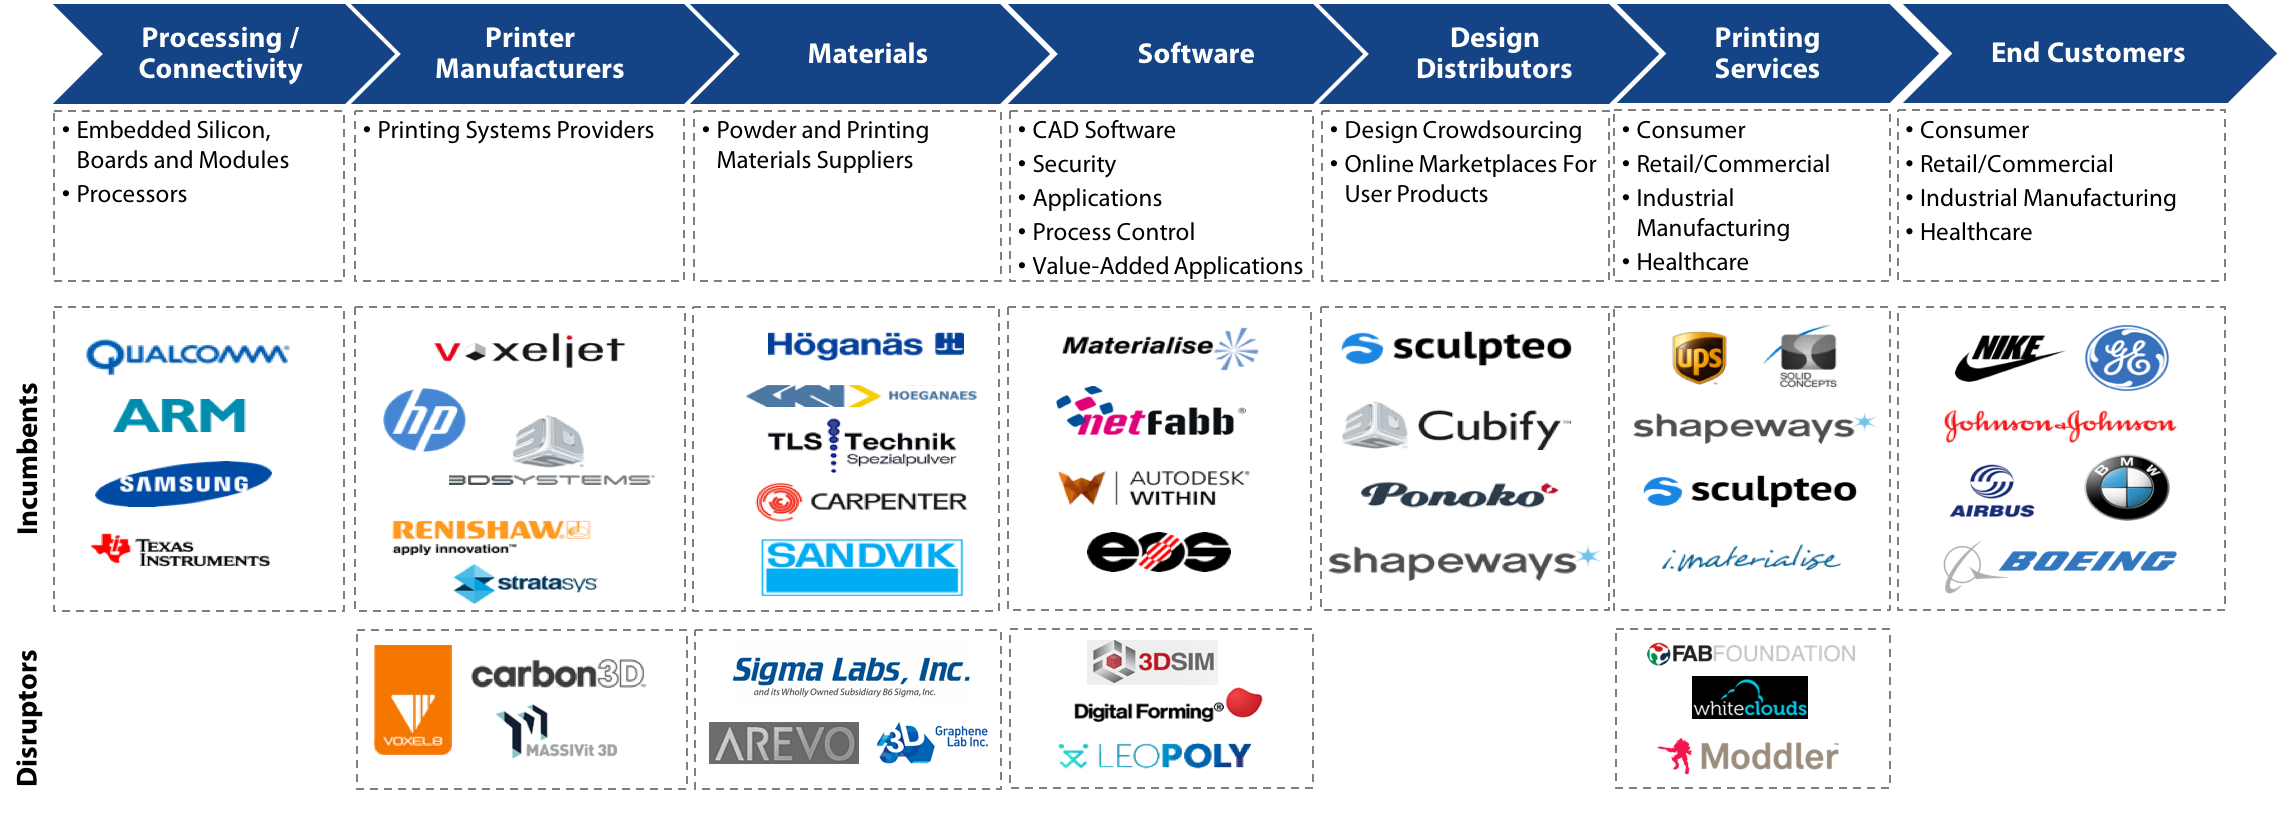 3D Printing Value Chain